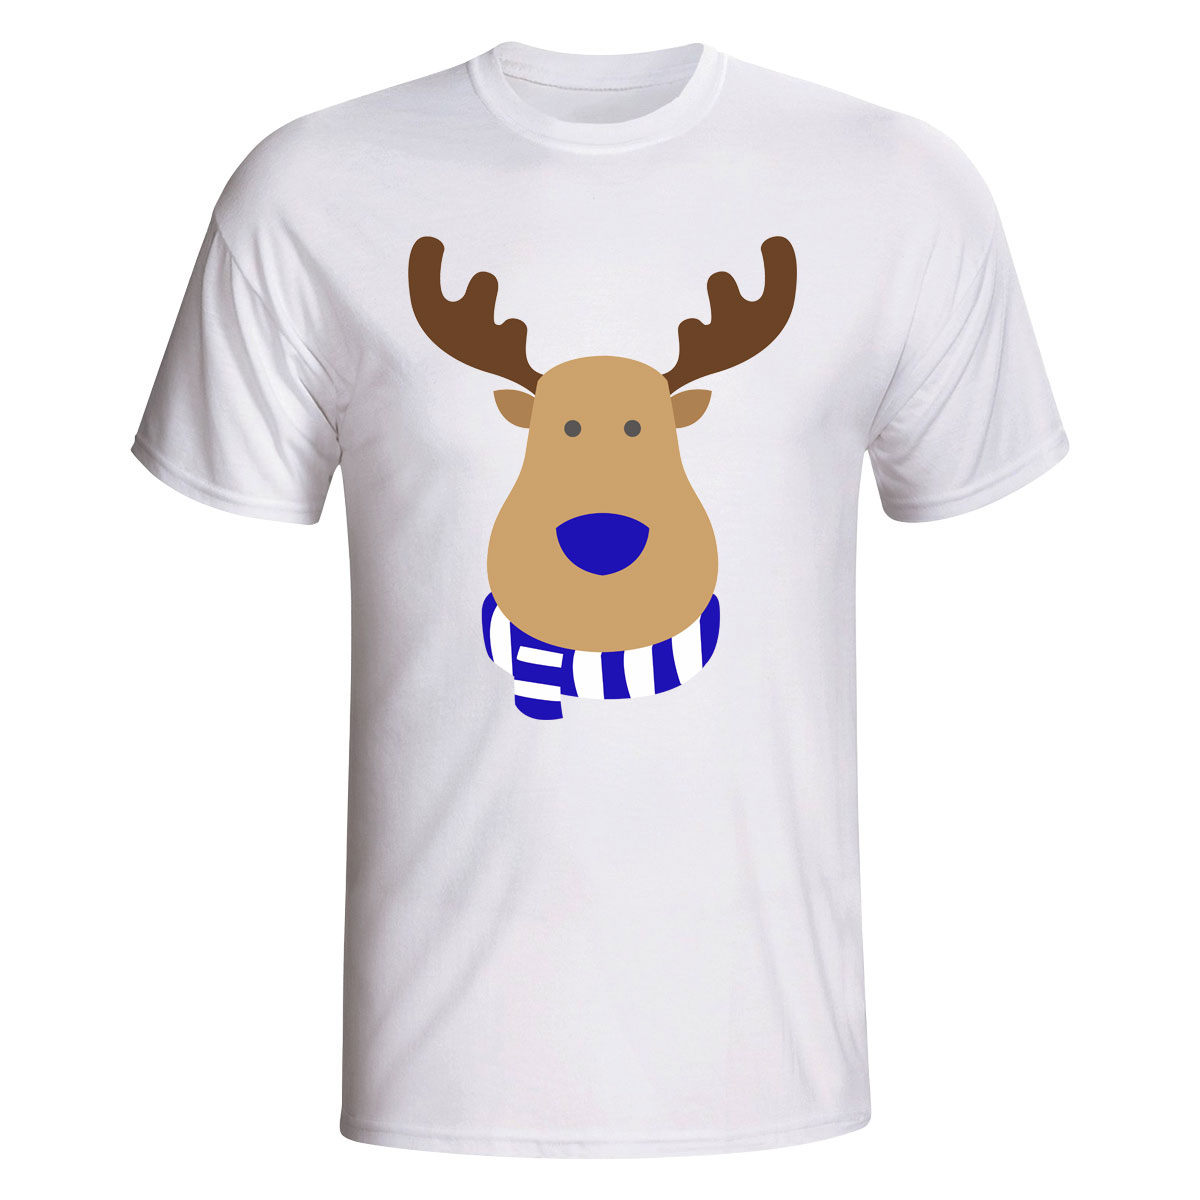 Tenerife Rudolph Supporters T-shirt (white)